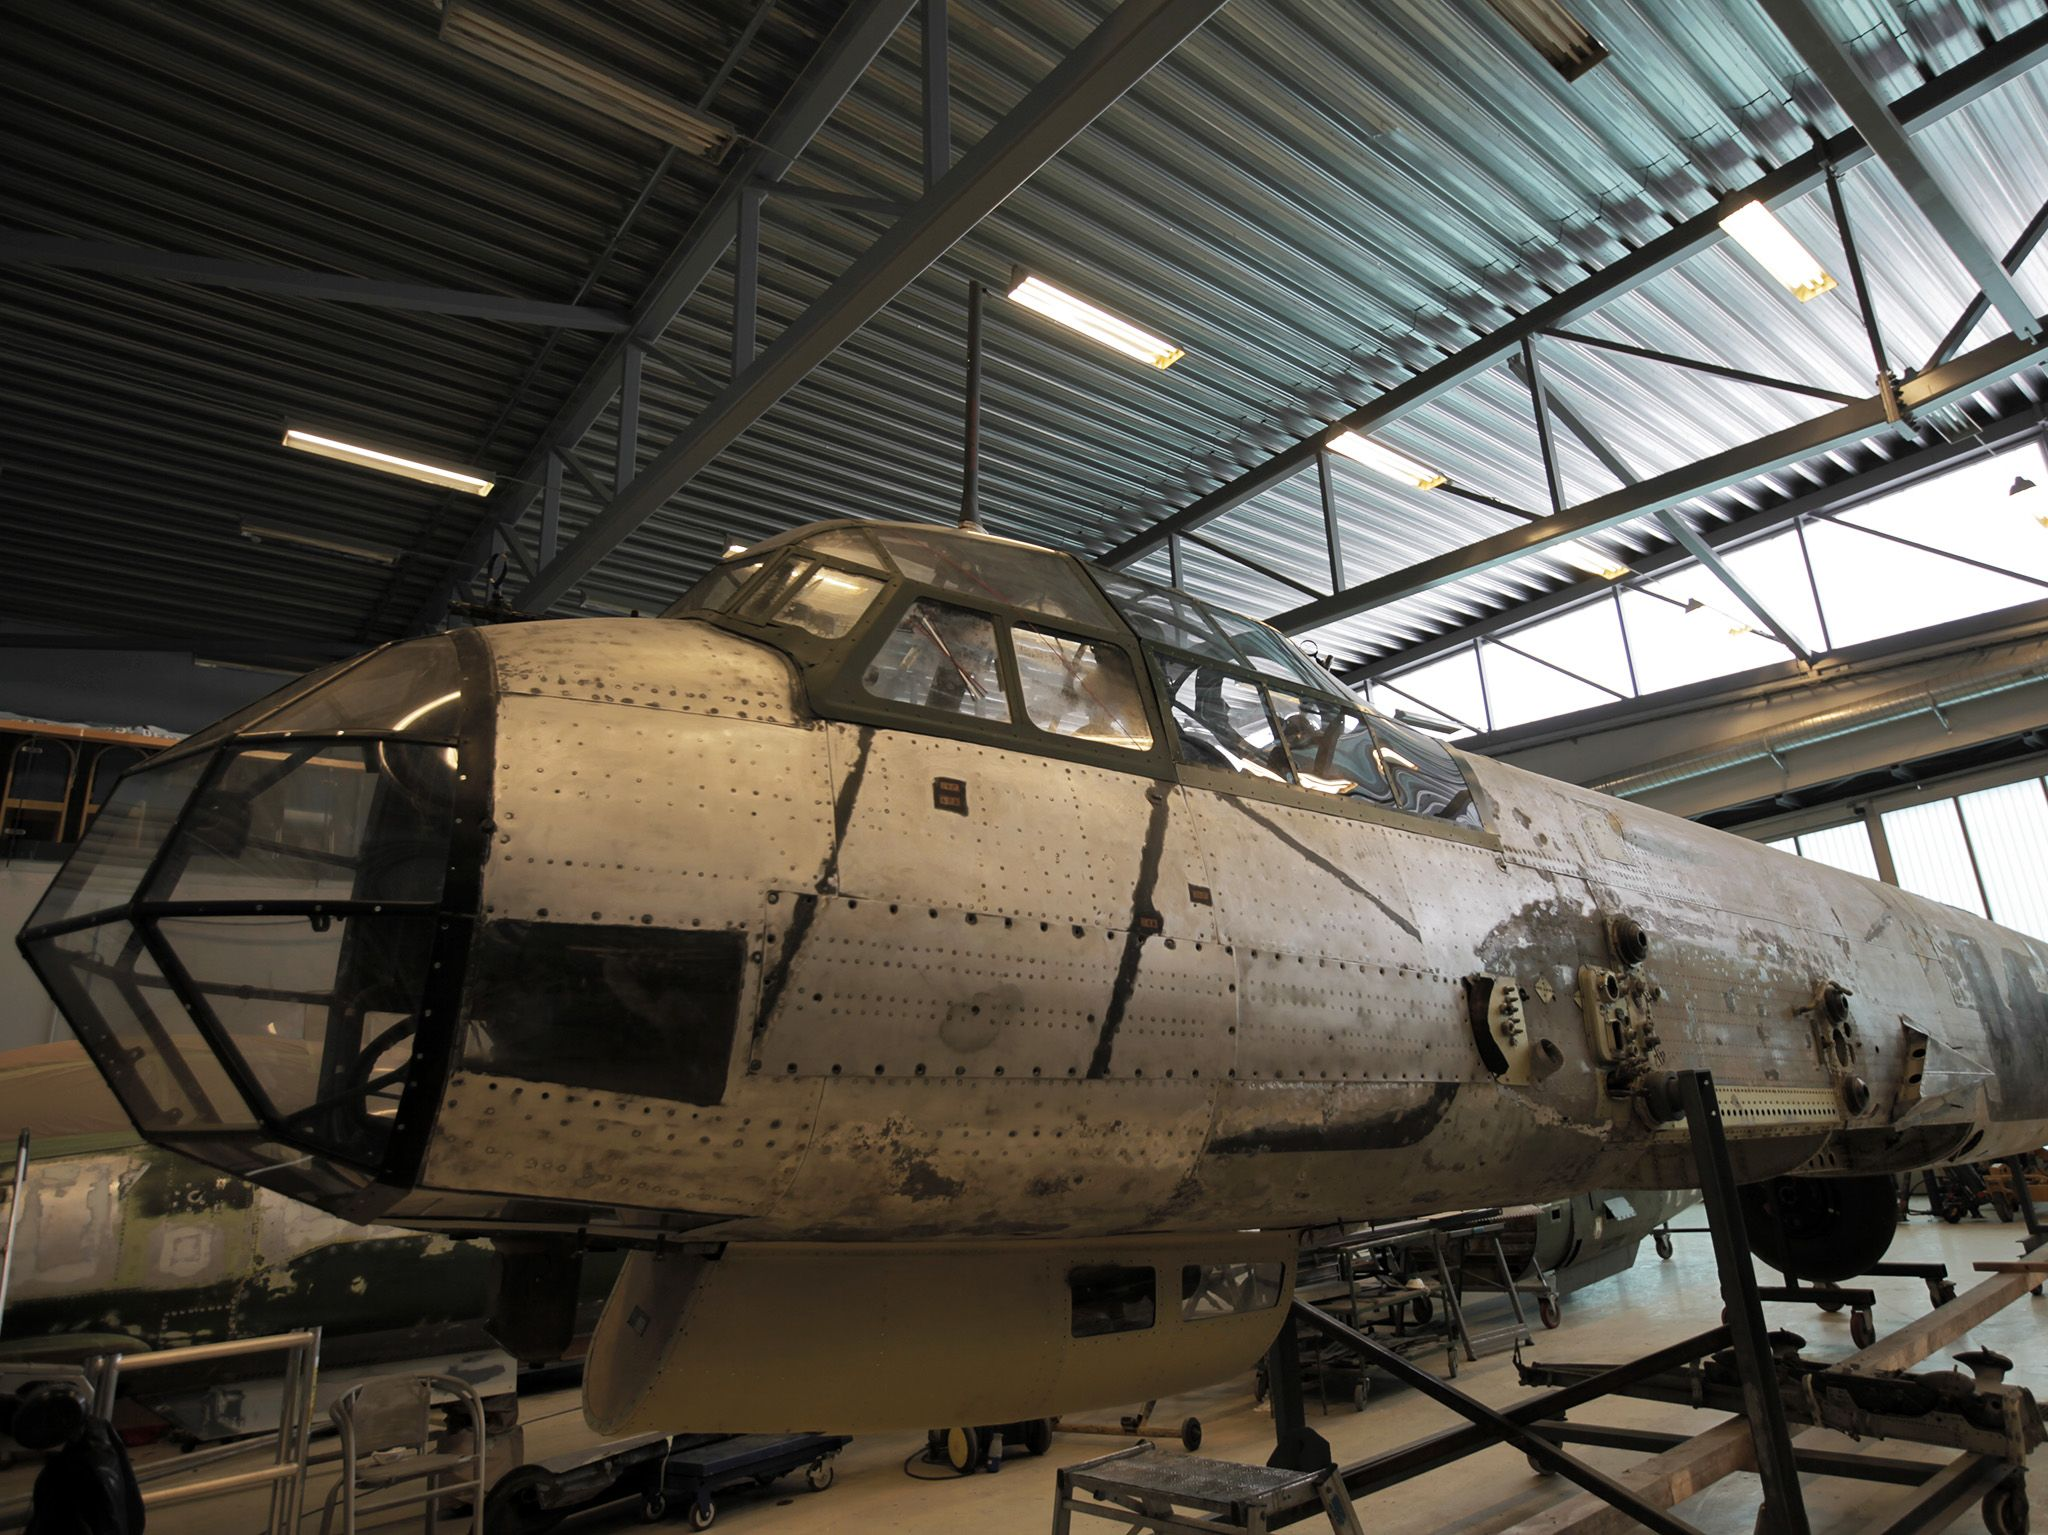 JU88 Bomber Airplane. This image is from Nazi Megastructures: Russia's War. [Photo of the day - 六月 2018]